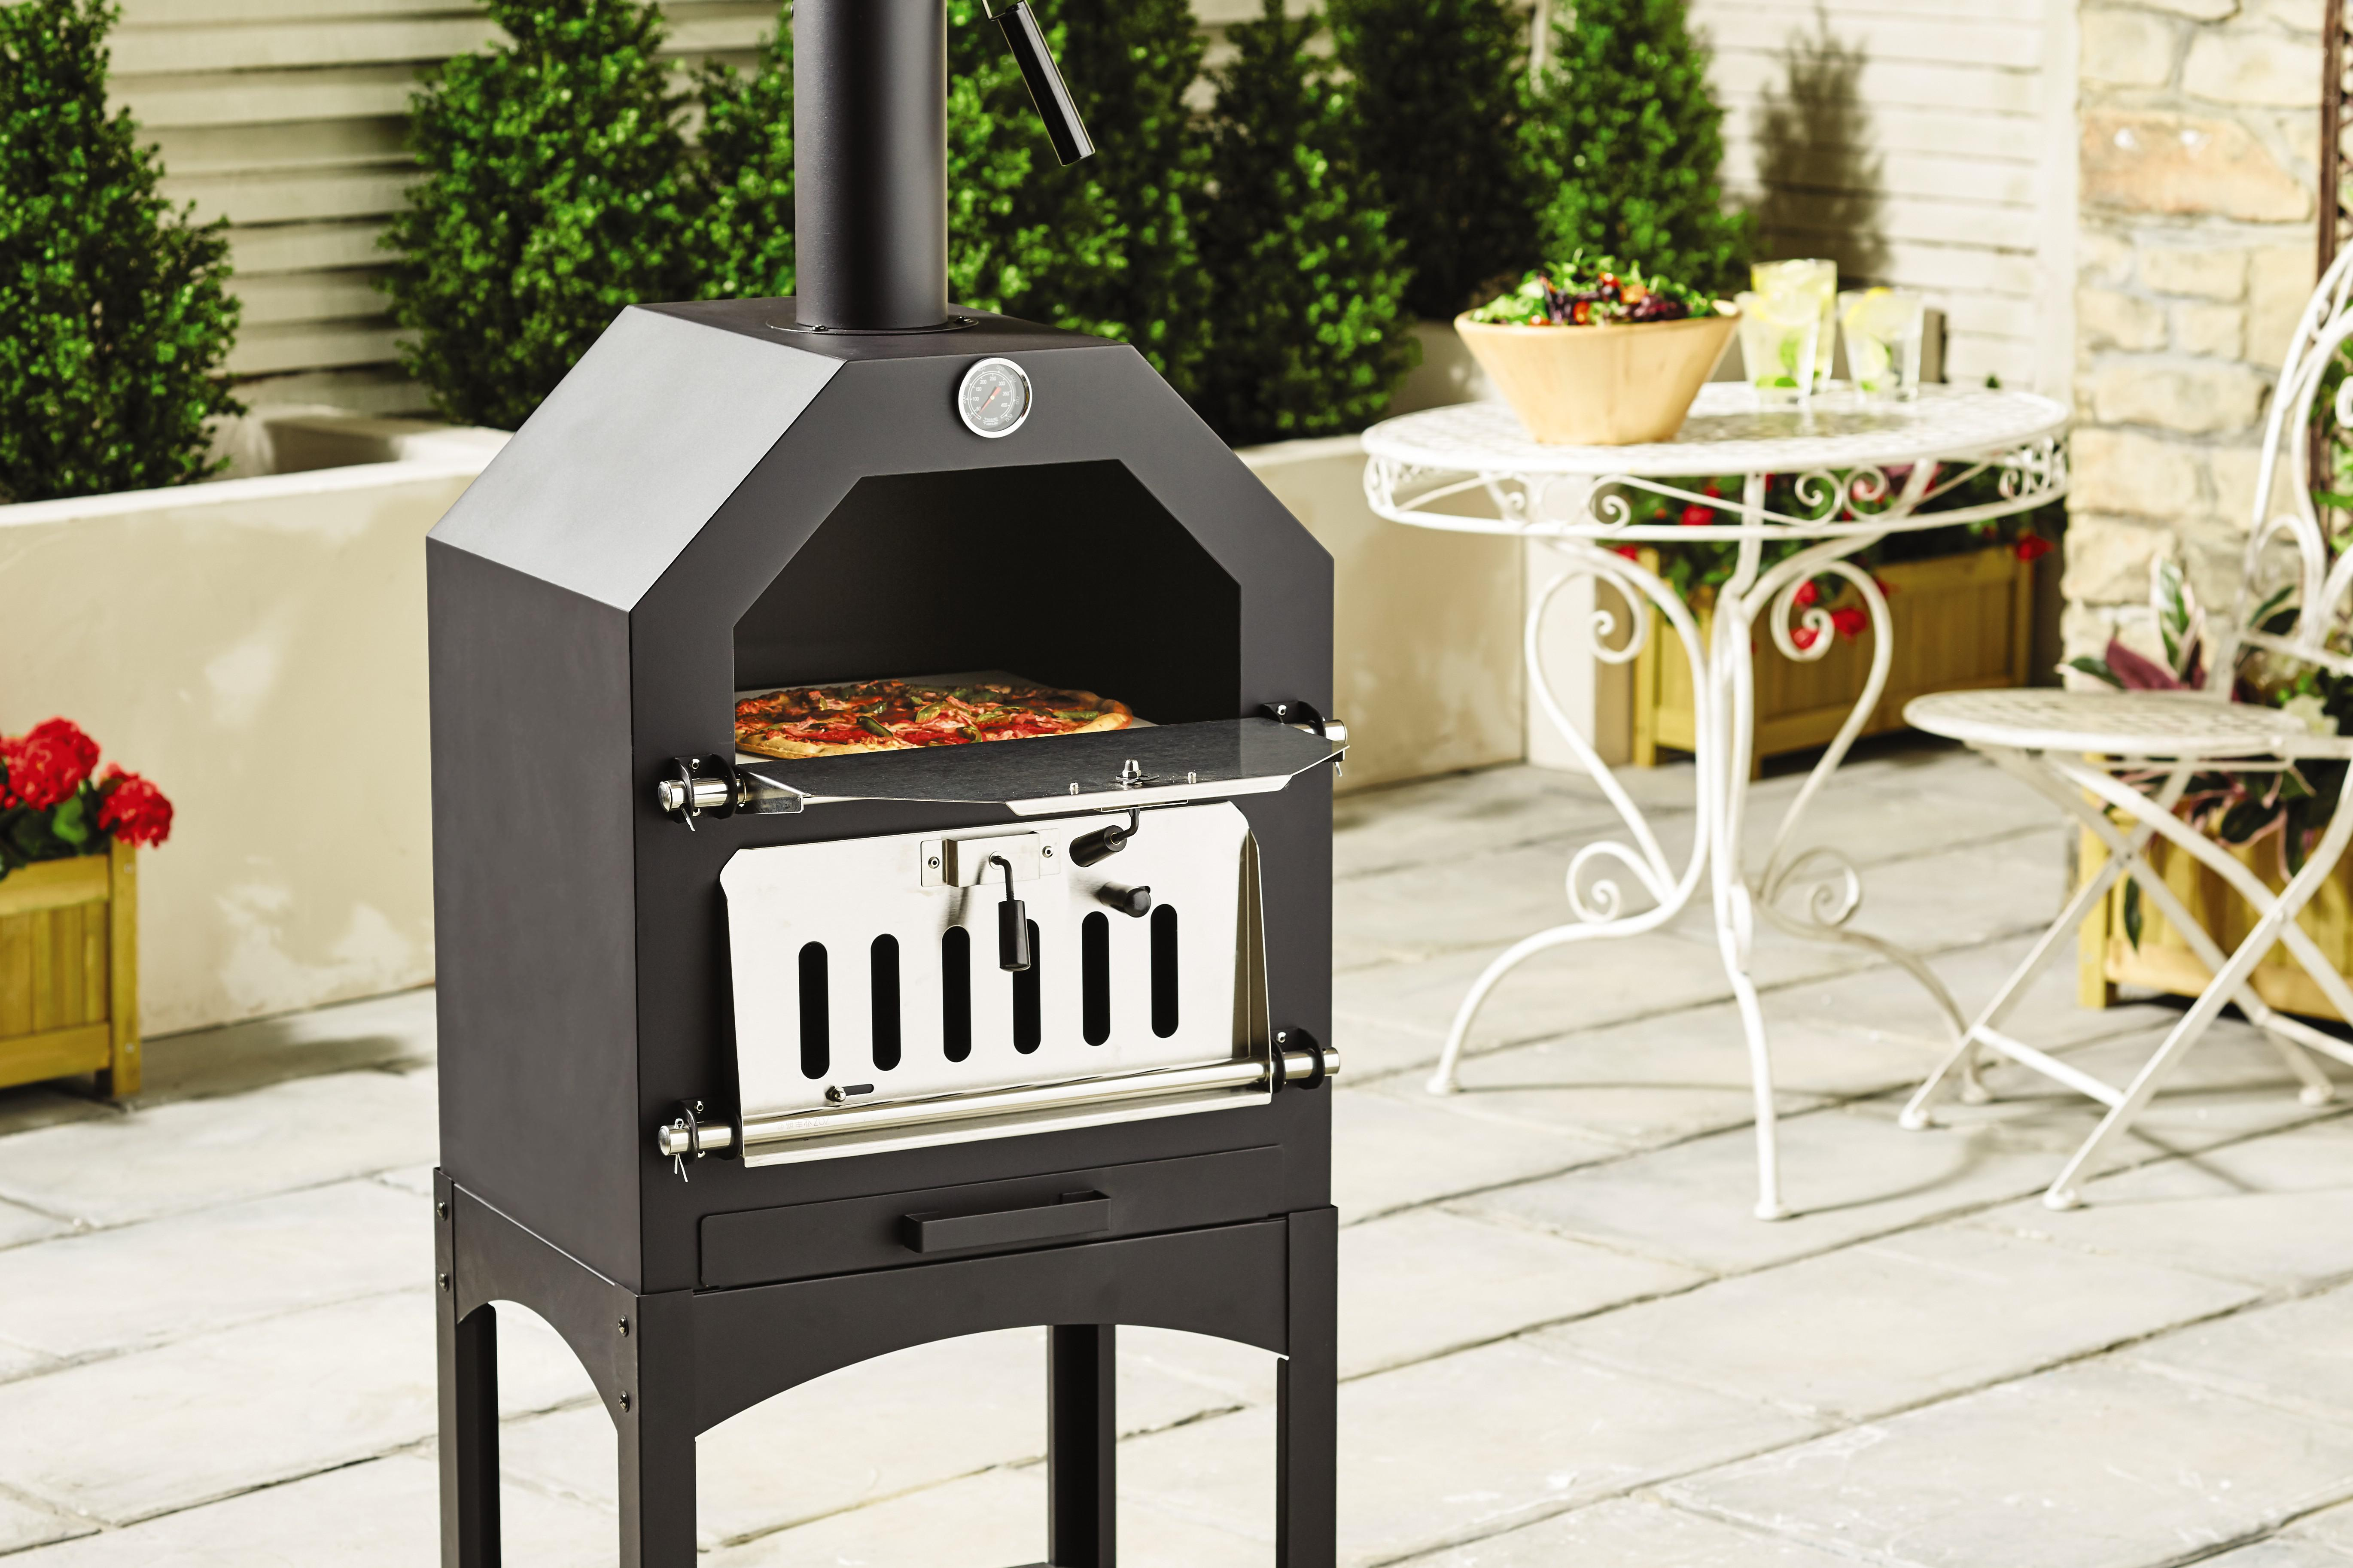 Barbecue Aldi Aldi Is Selling A 99 Pizza Oven Just In Time For The Scorching